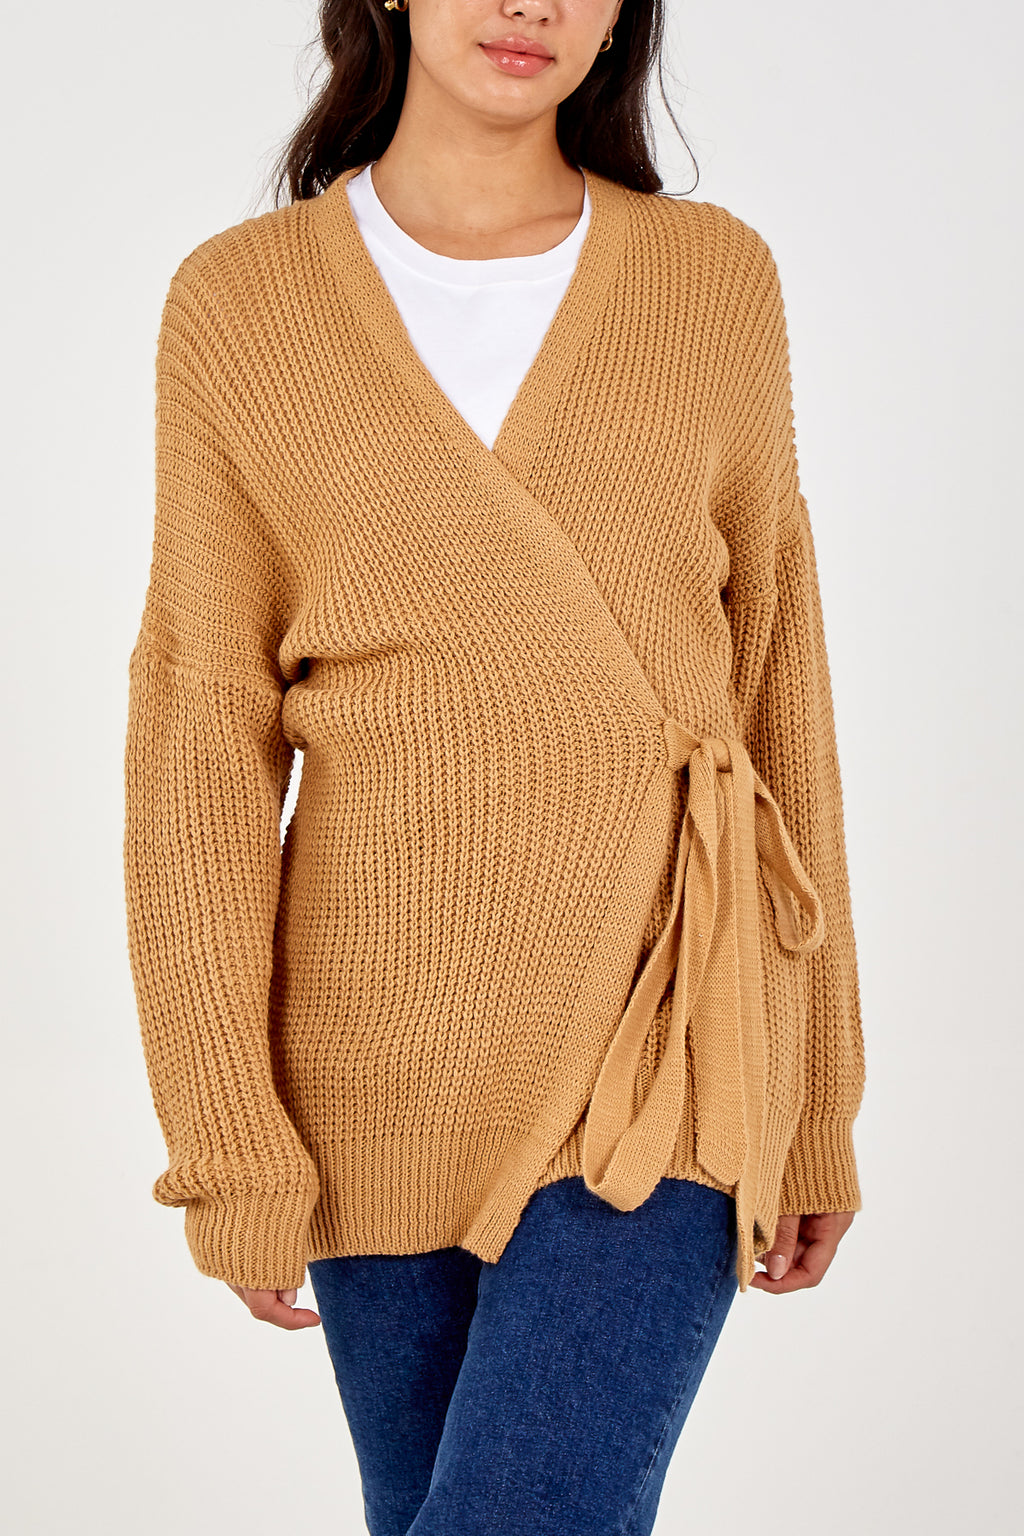 Wrap Tie Front Knitted Cardigan